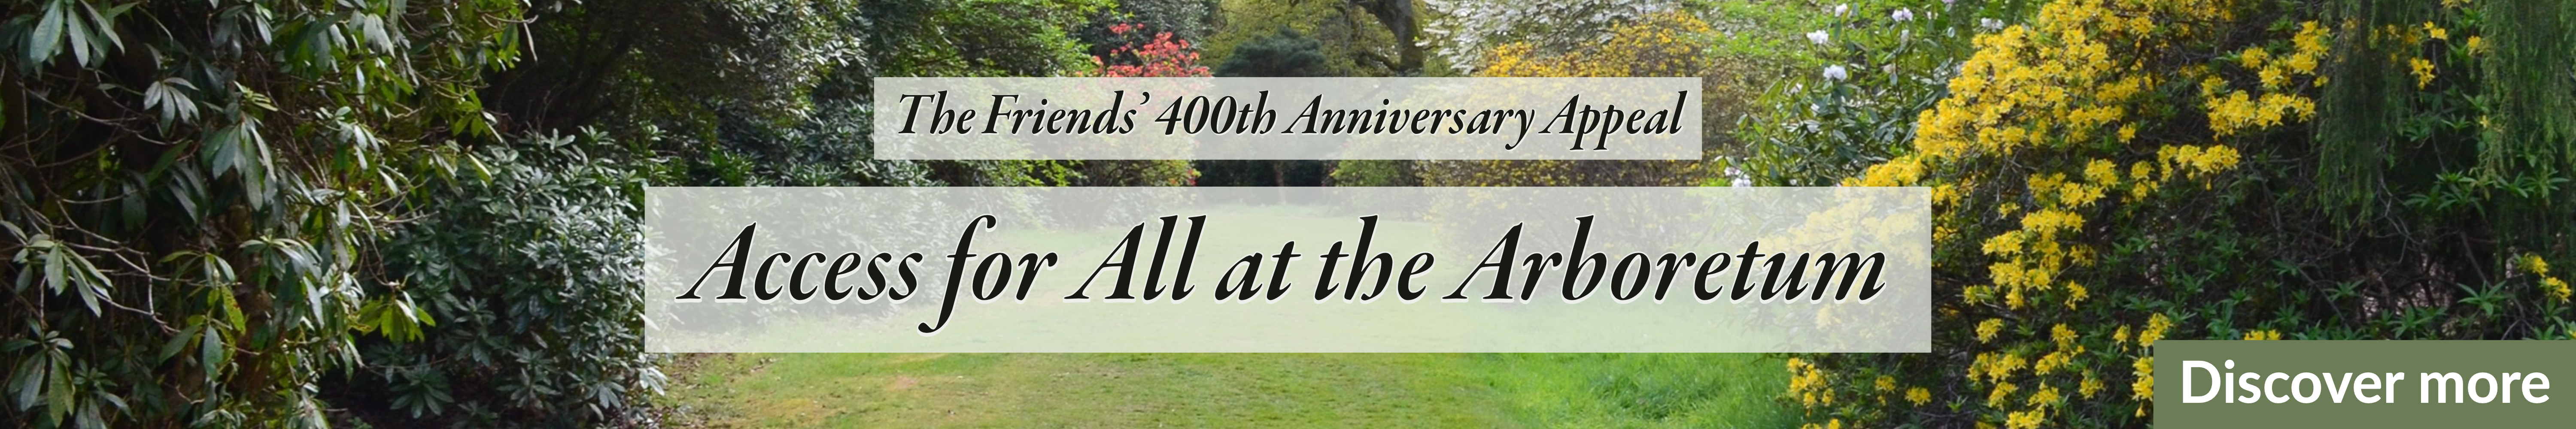 Friends' 400th anniversary appeal